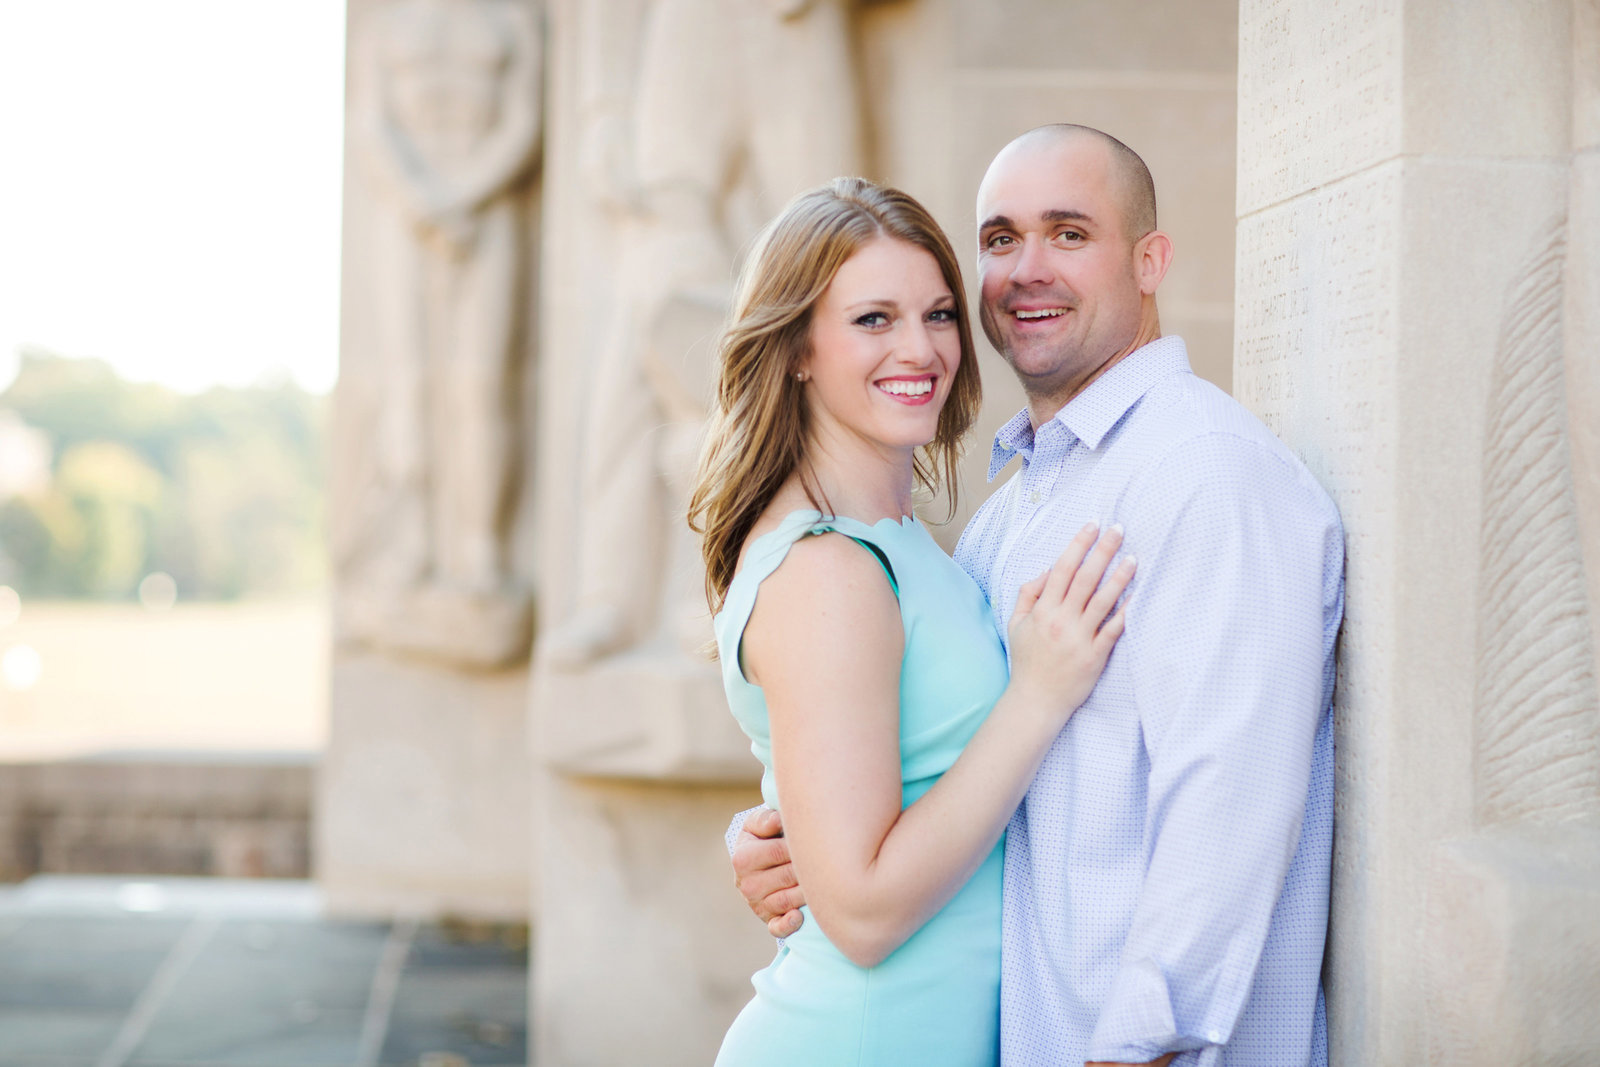 bridal portrait skyryder engagement wedding photography blacksburg roanoke charlottesville lexington radford-066